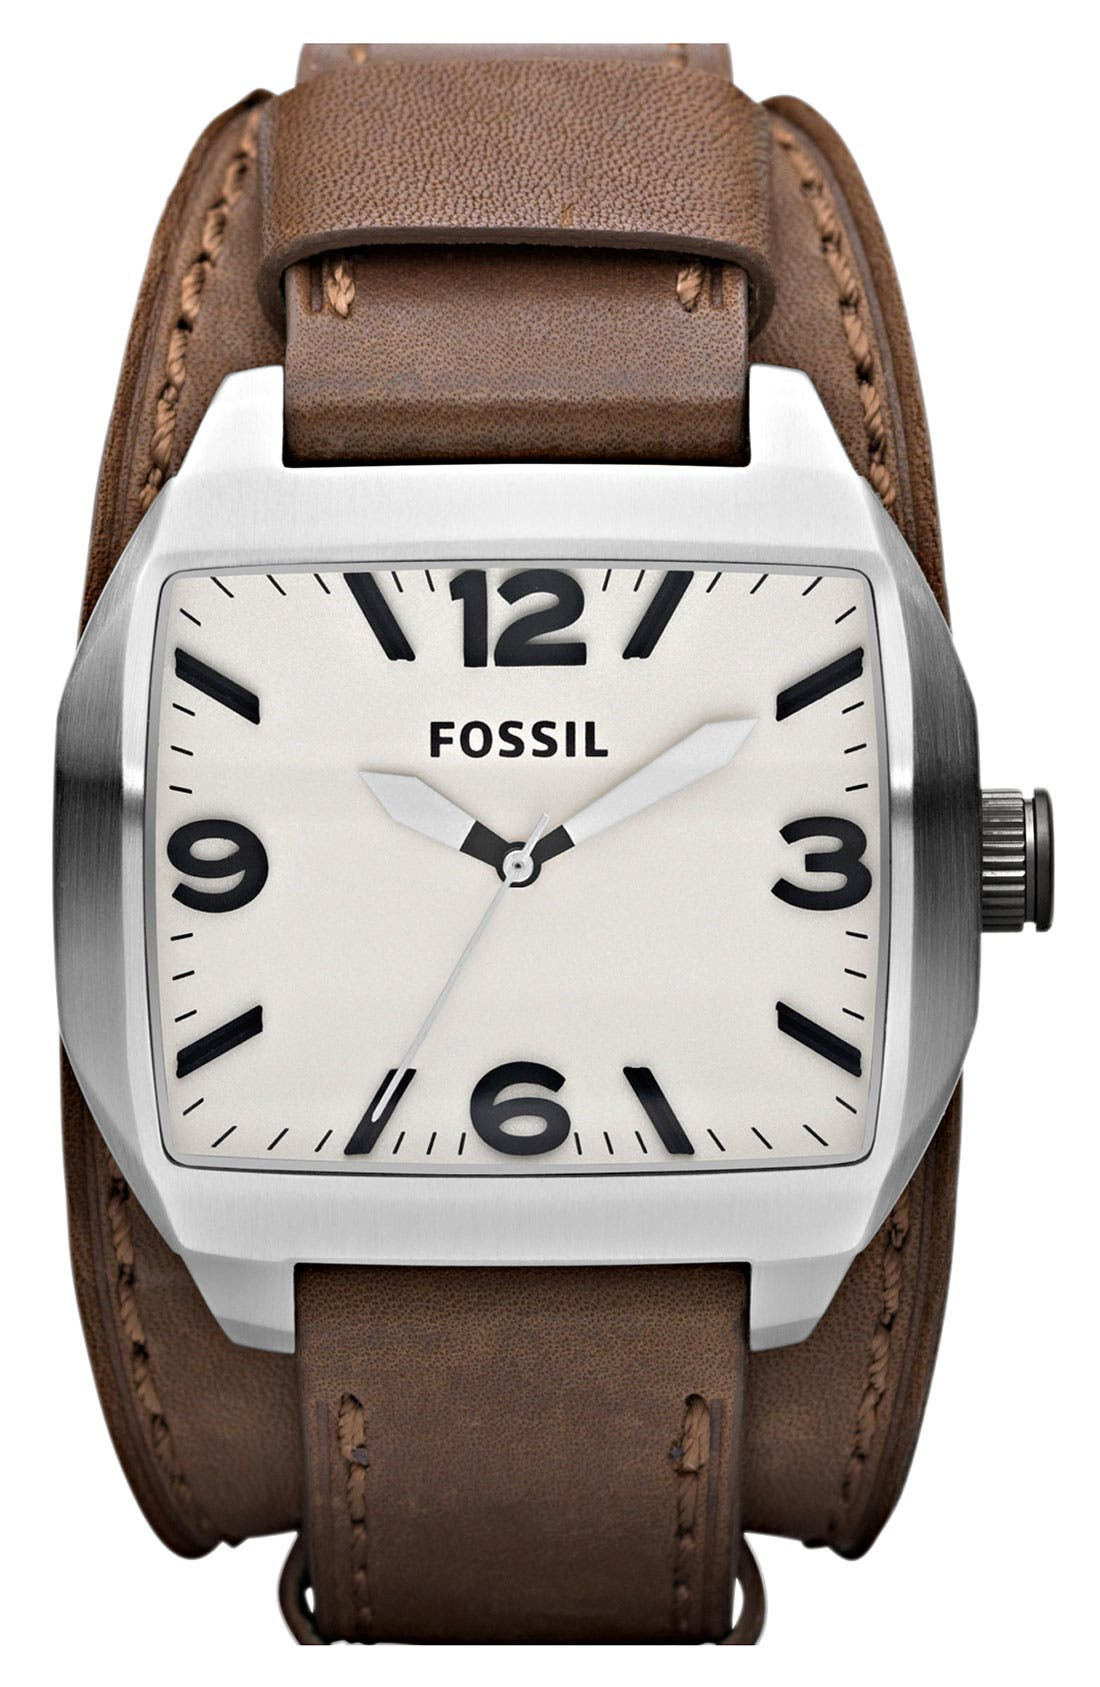 Main Image - Fossil 'Roland' Leather Cuff Watch, 38mm x 44mm